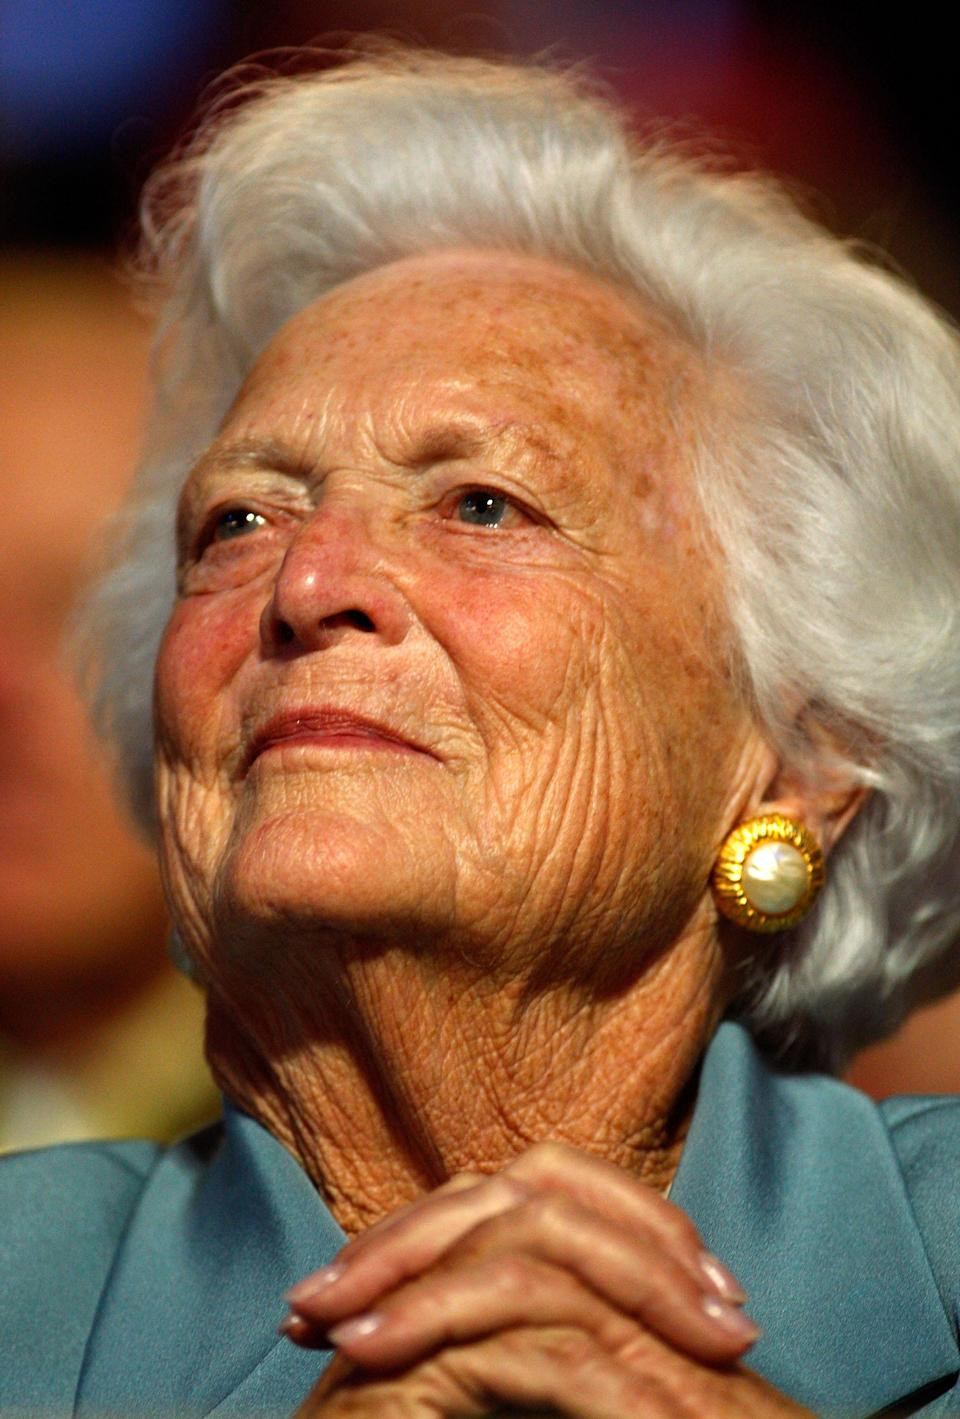 Barbara Bush, pictured in 2008, died Tuesday. (Photo: Scott Olson/Getty Images)